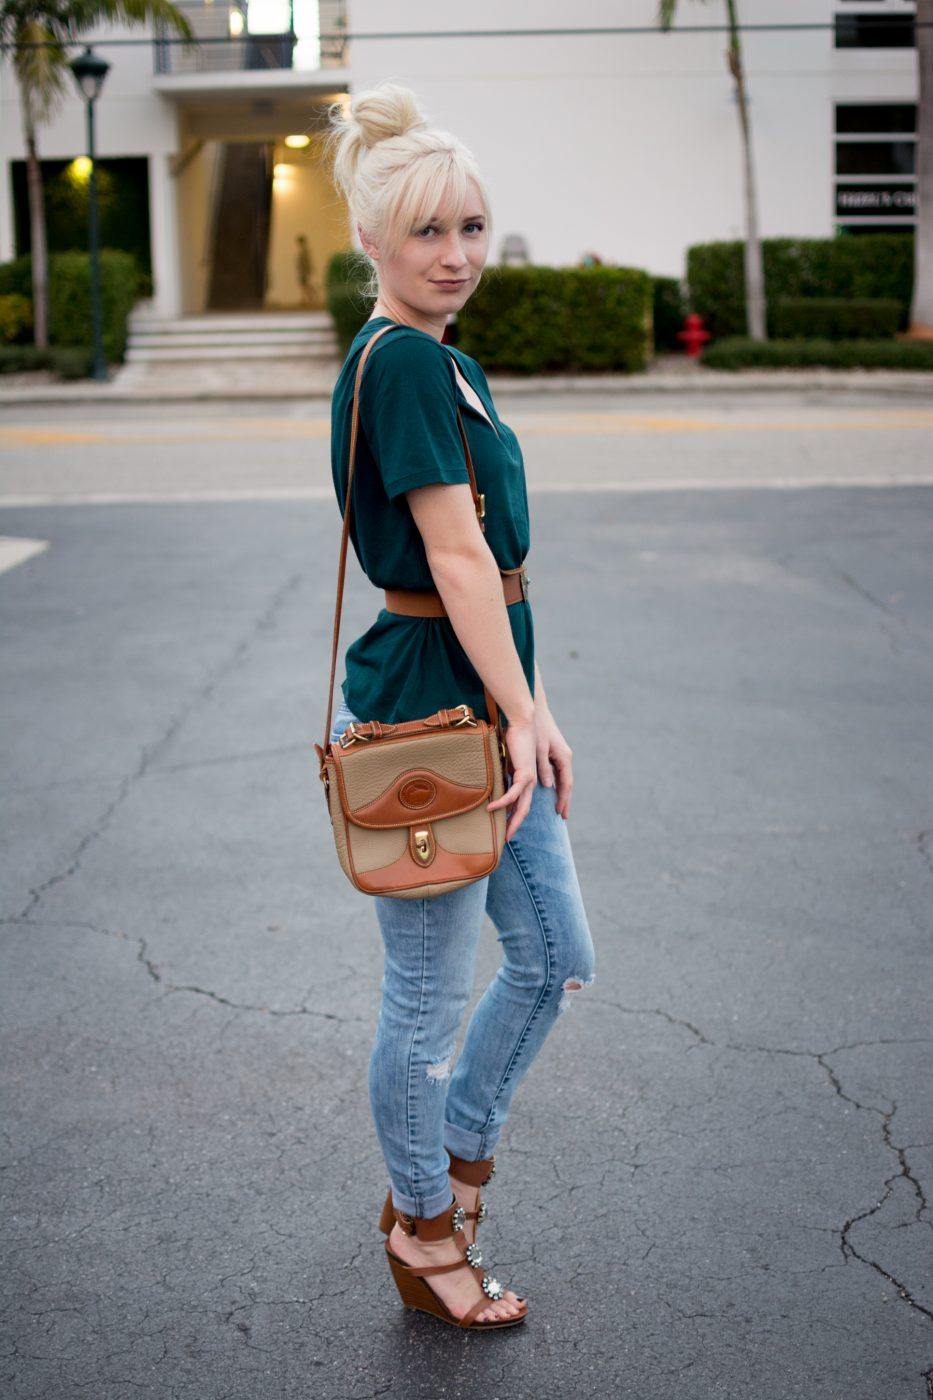 Teal tee, waist belt, ripped jeans, wedges.